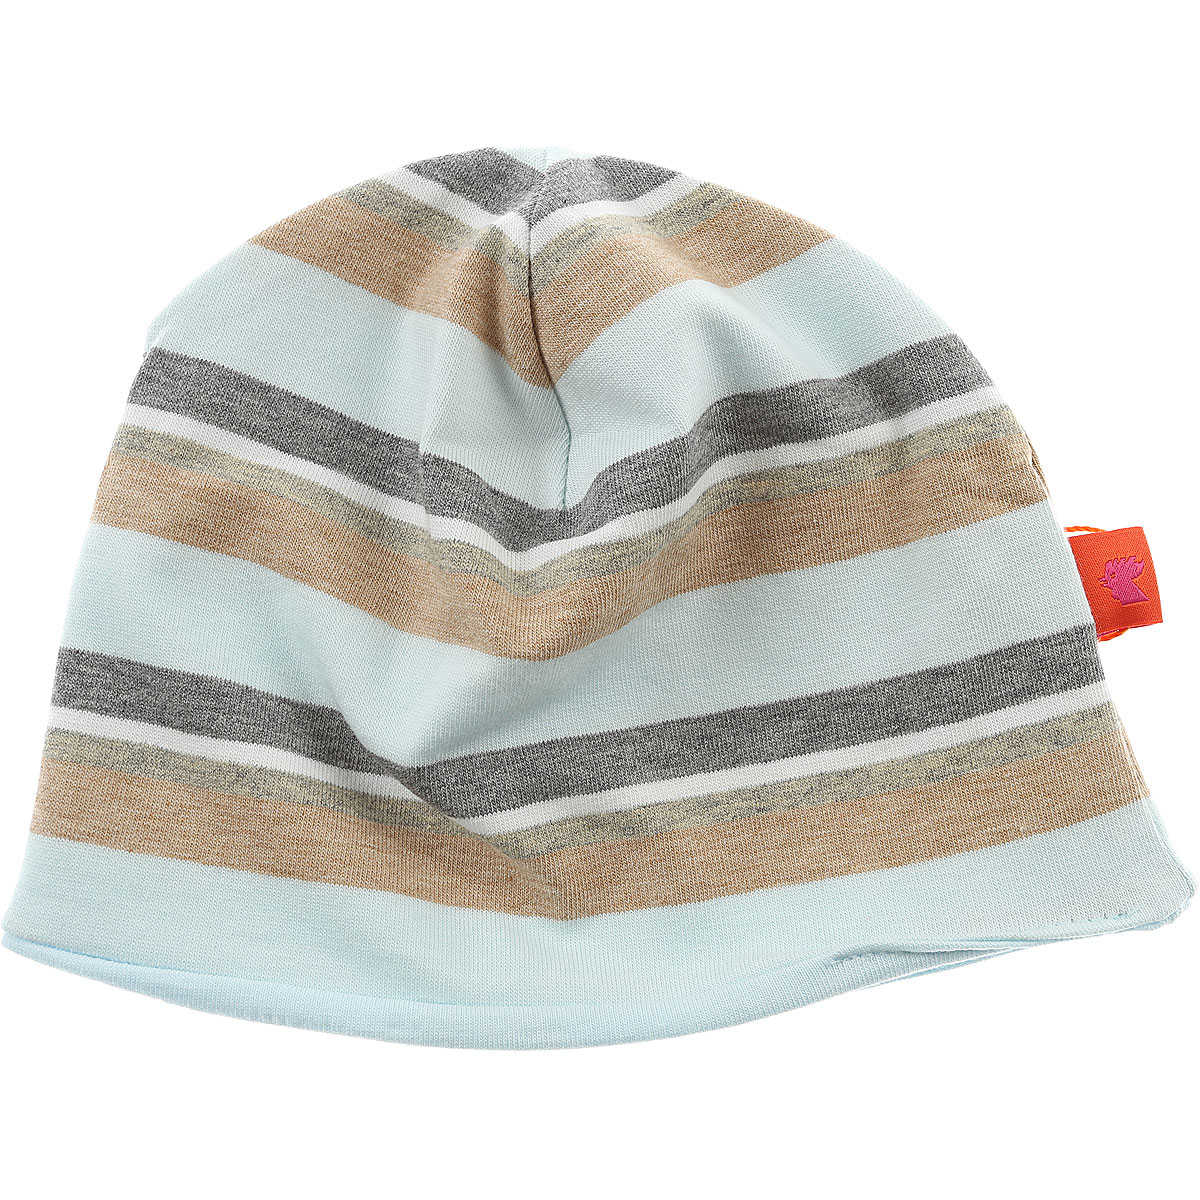 Gallo Baby Hats for Boys in Outlet Sky Blue USA - GOOFASH